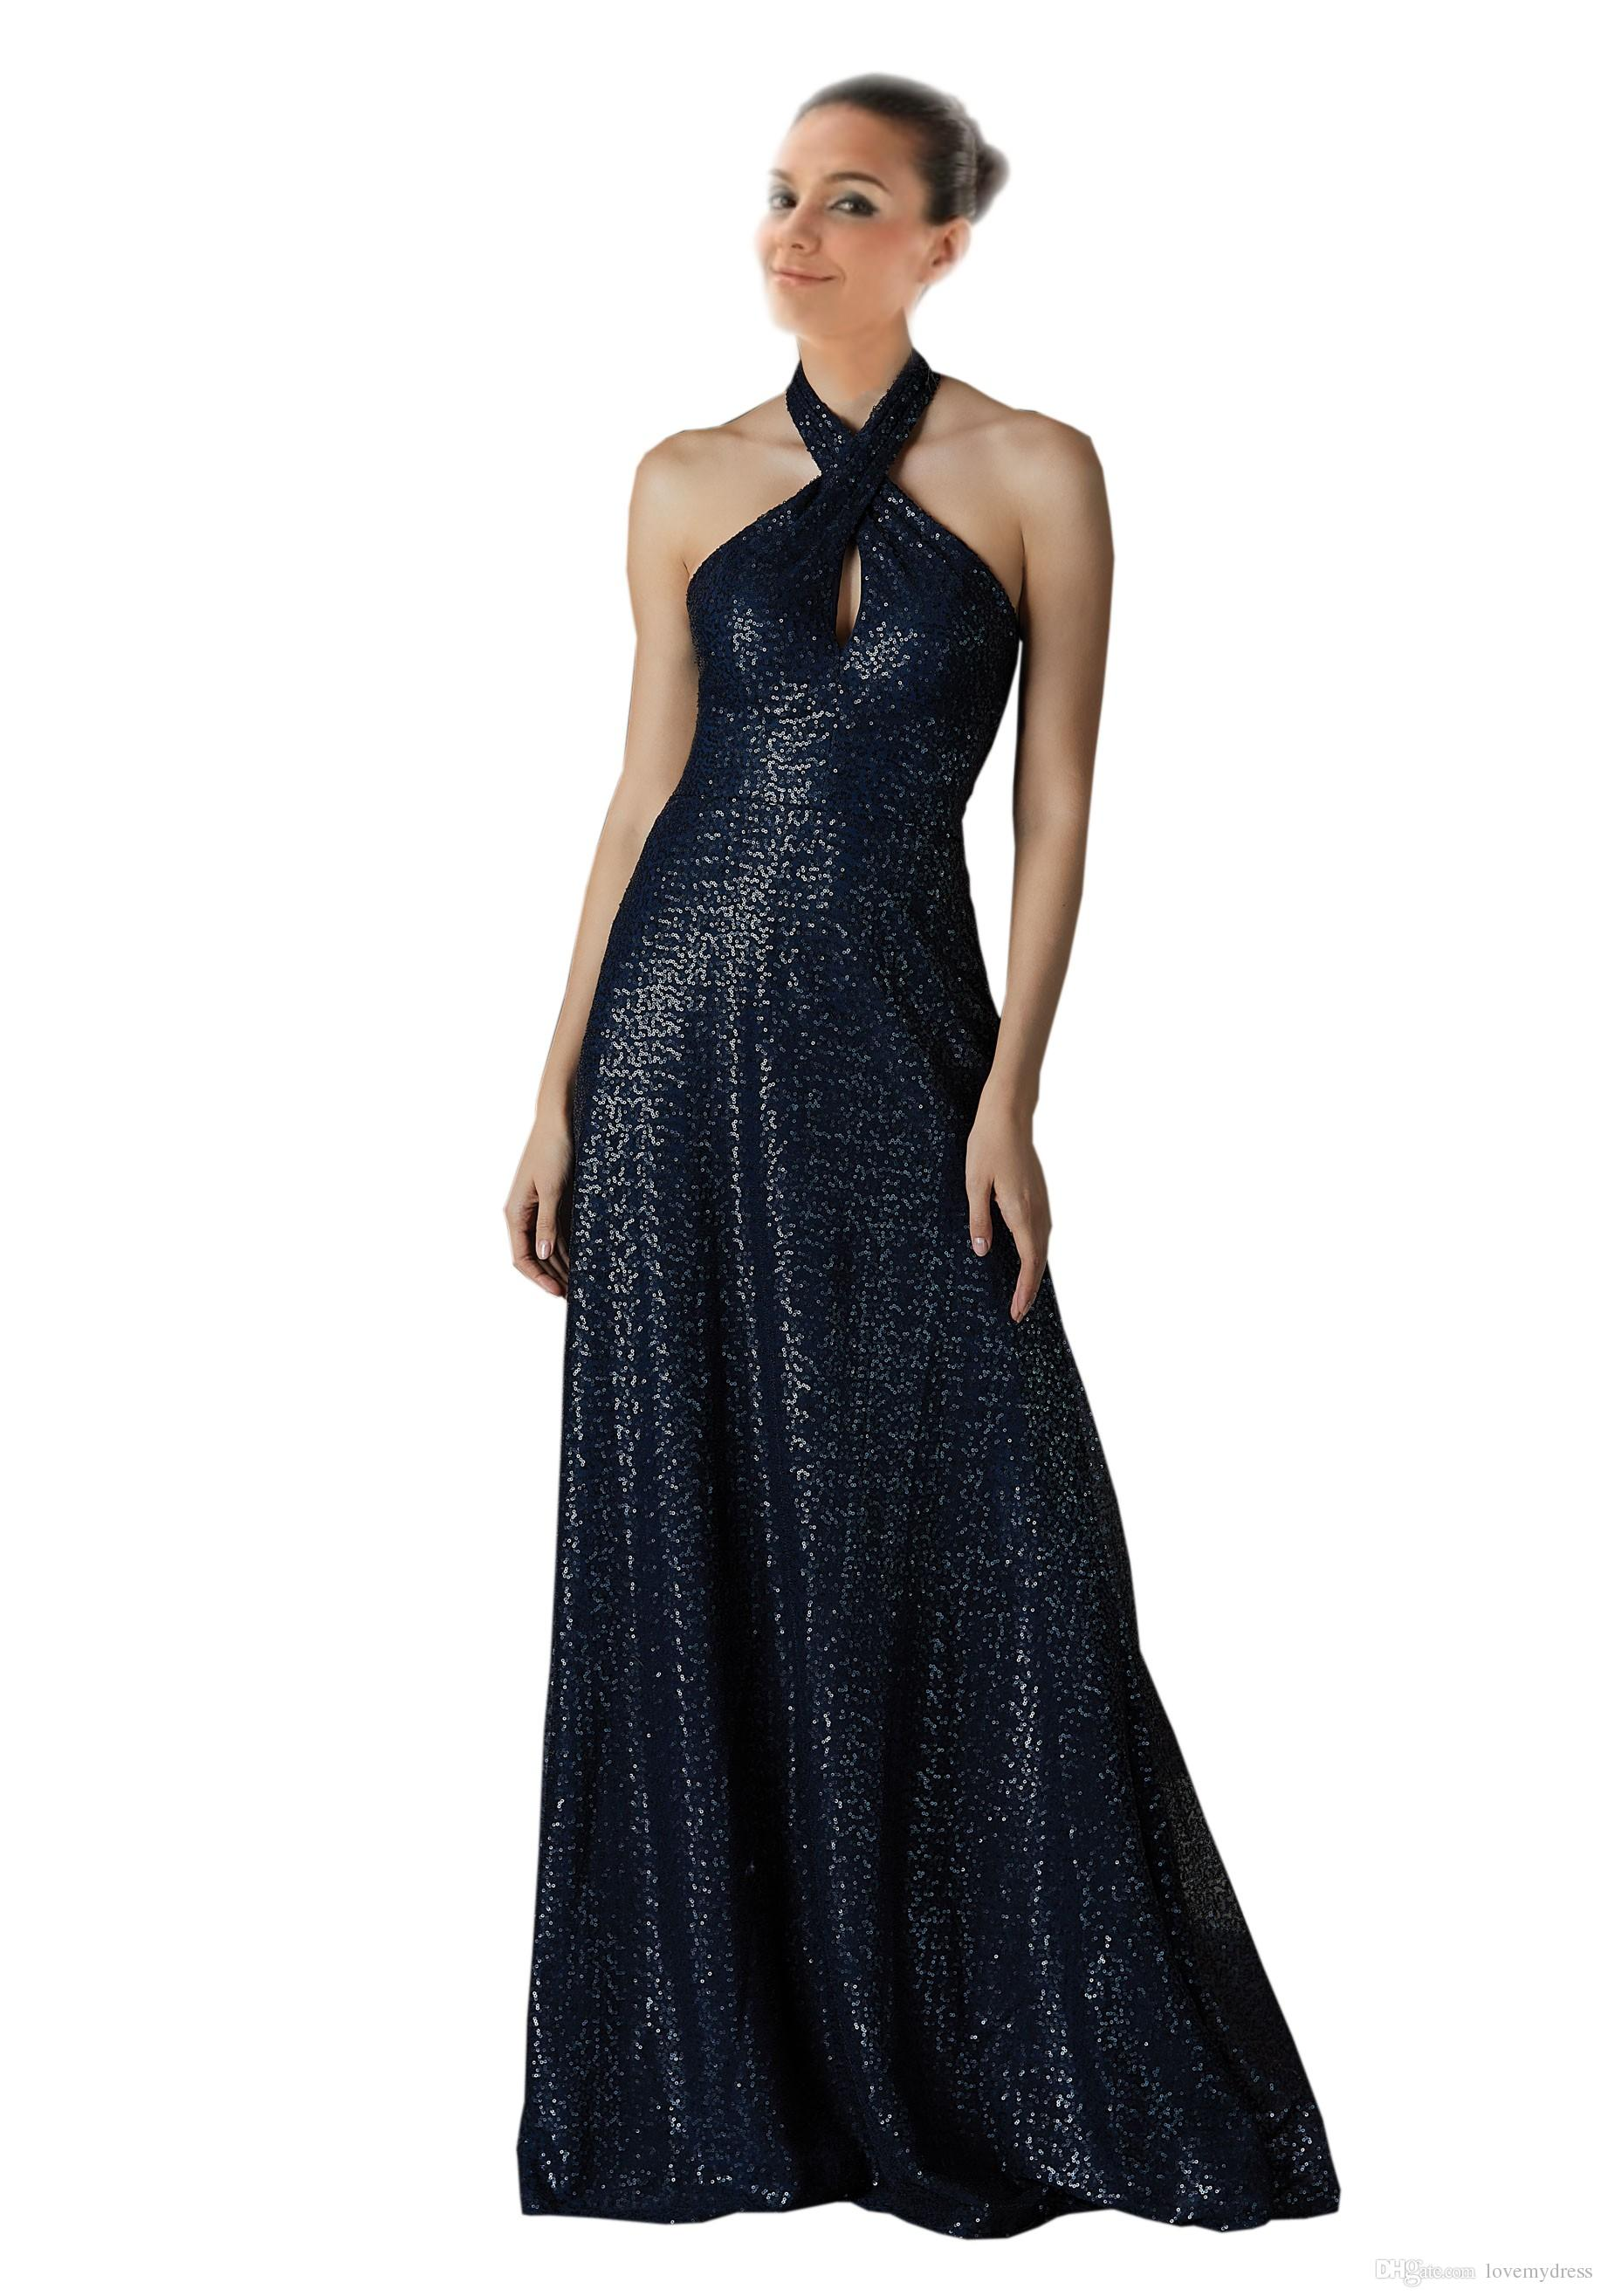 Sparkly Dark Navy Halter Sequined Bridesmaid Dresses A line Open Back Full Length Ruched Country Wedding party Juniors Evening Gowns Dress